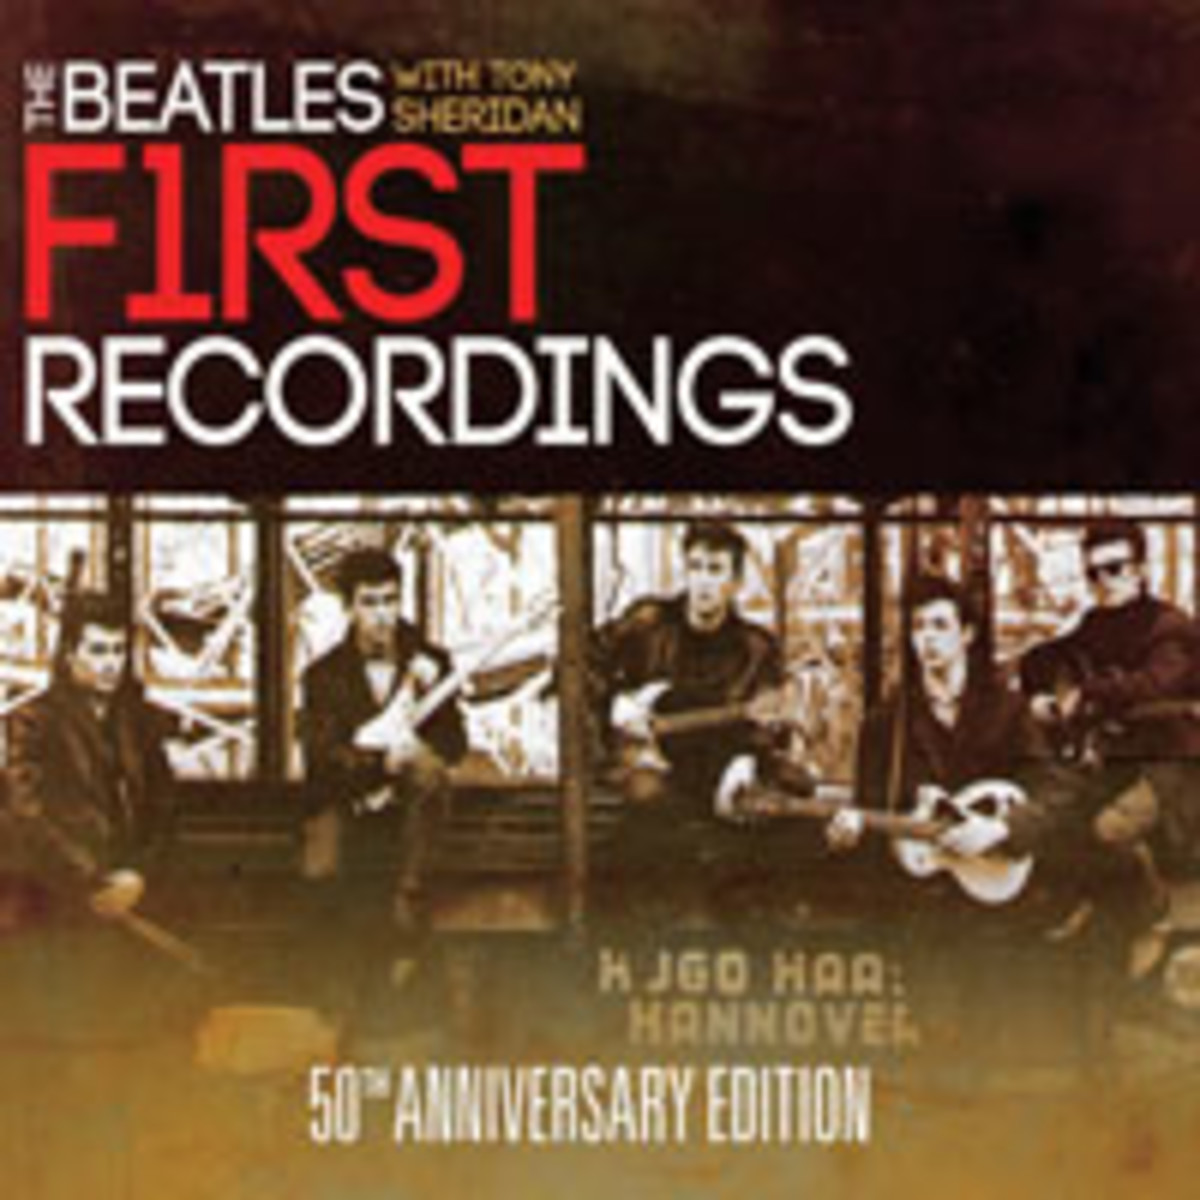 The Beatles First Recordings Beatles With Tony Sheridan